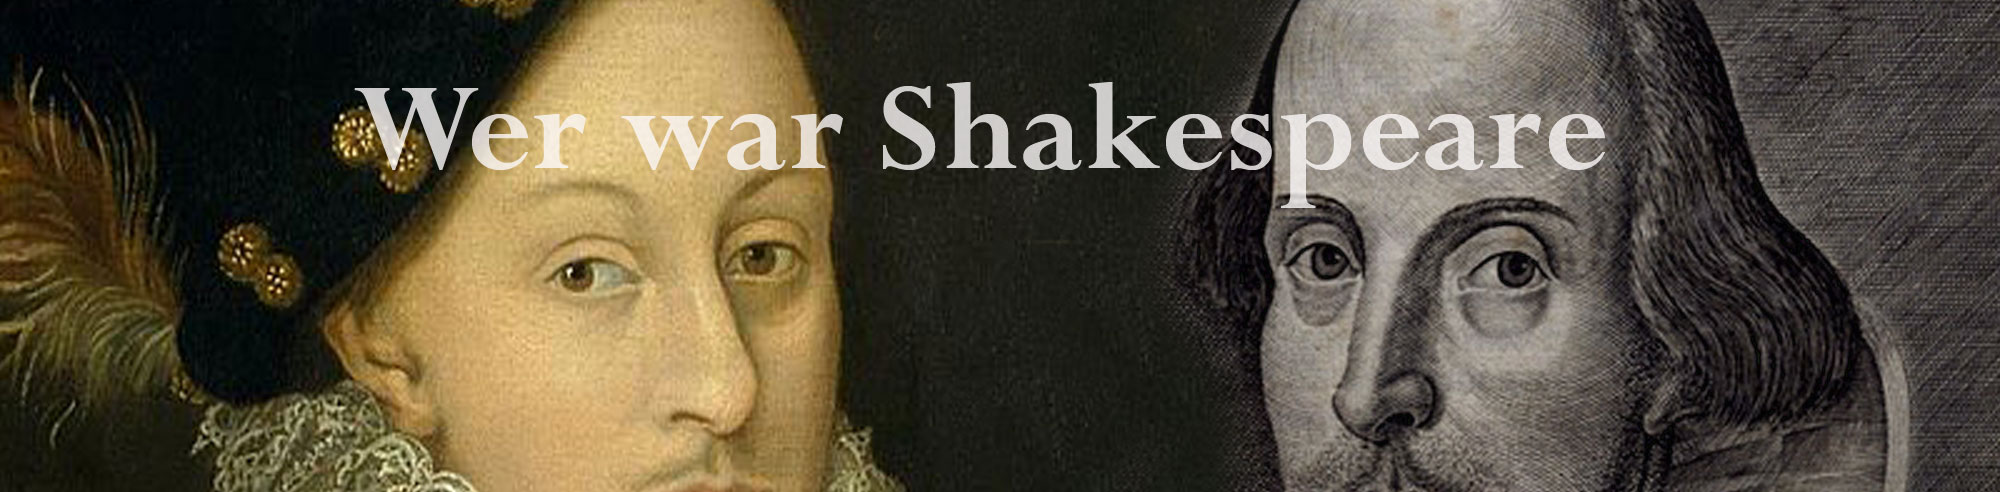 Wer war Shakespeare?